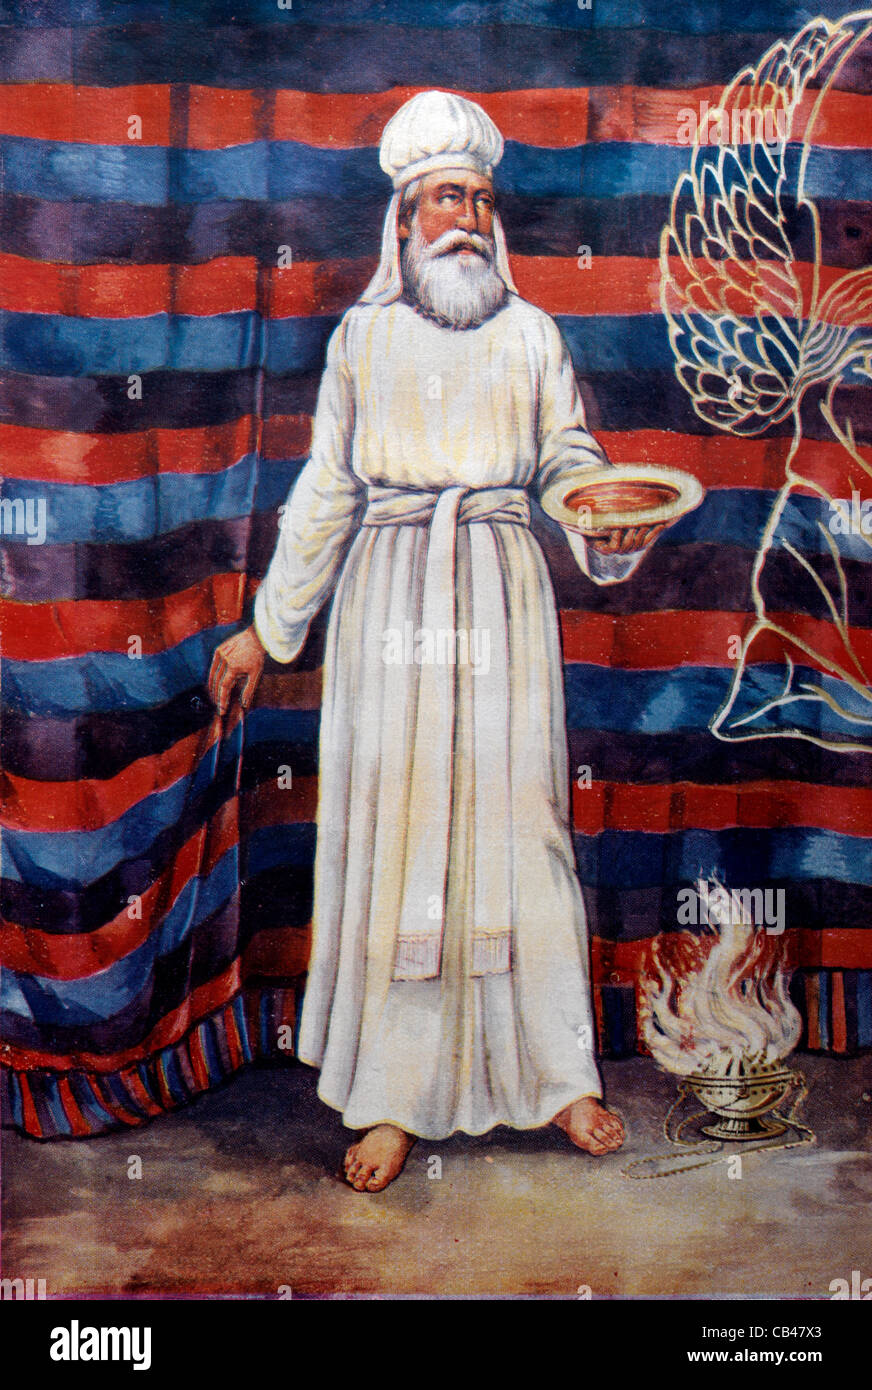 An Illustration Of The High Priest Of Israel On The Great